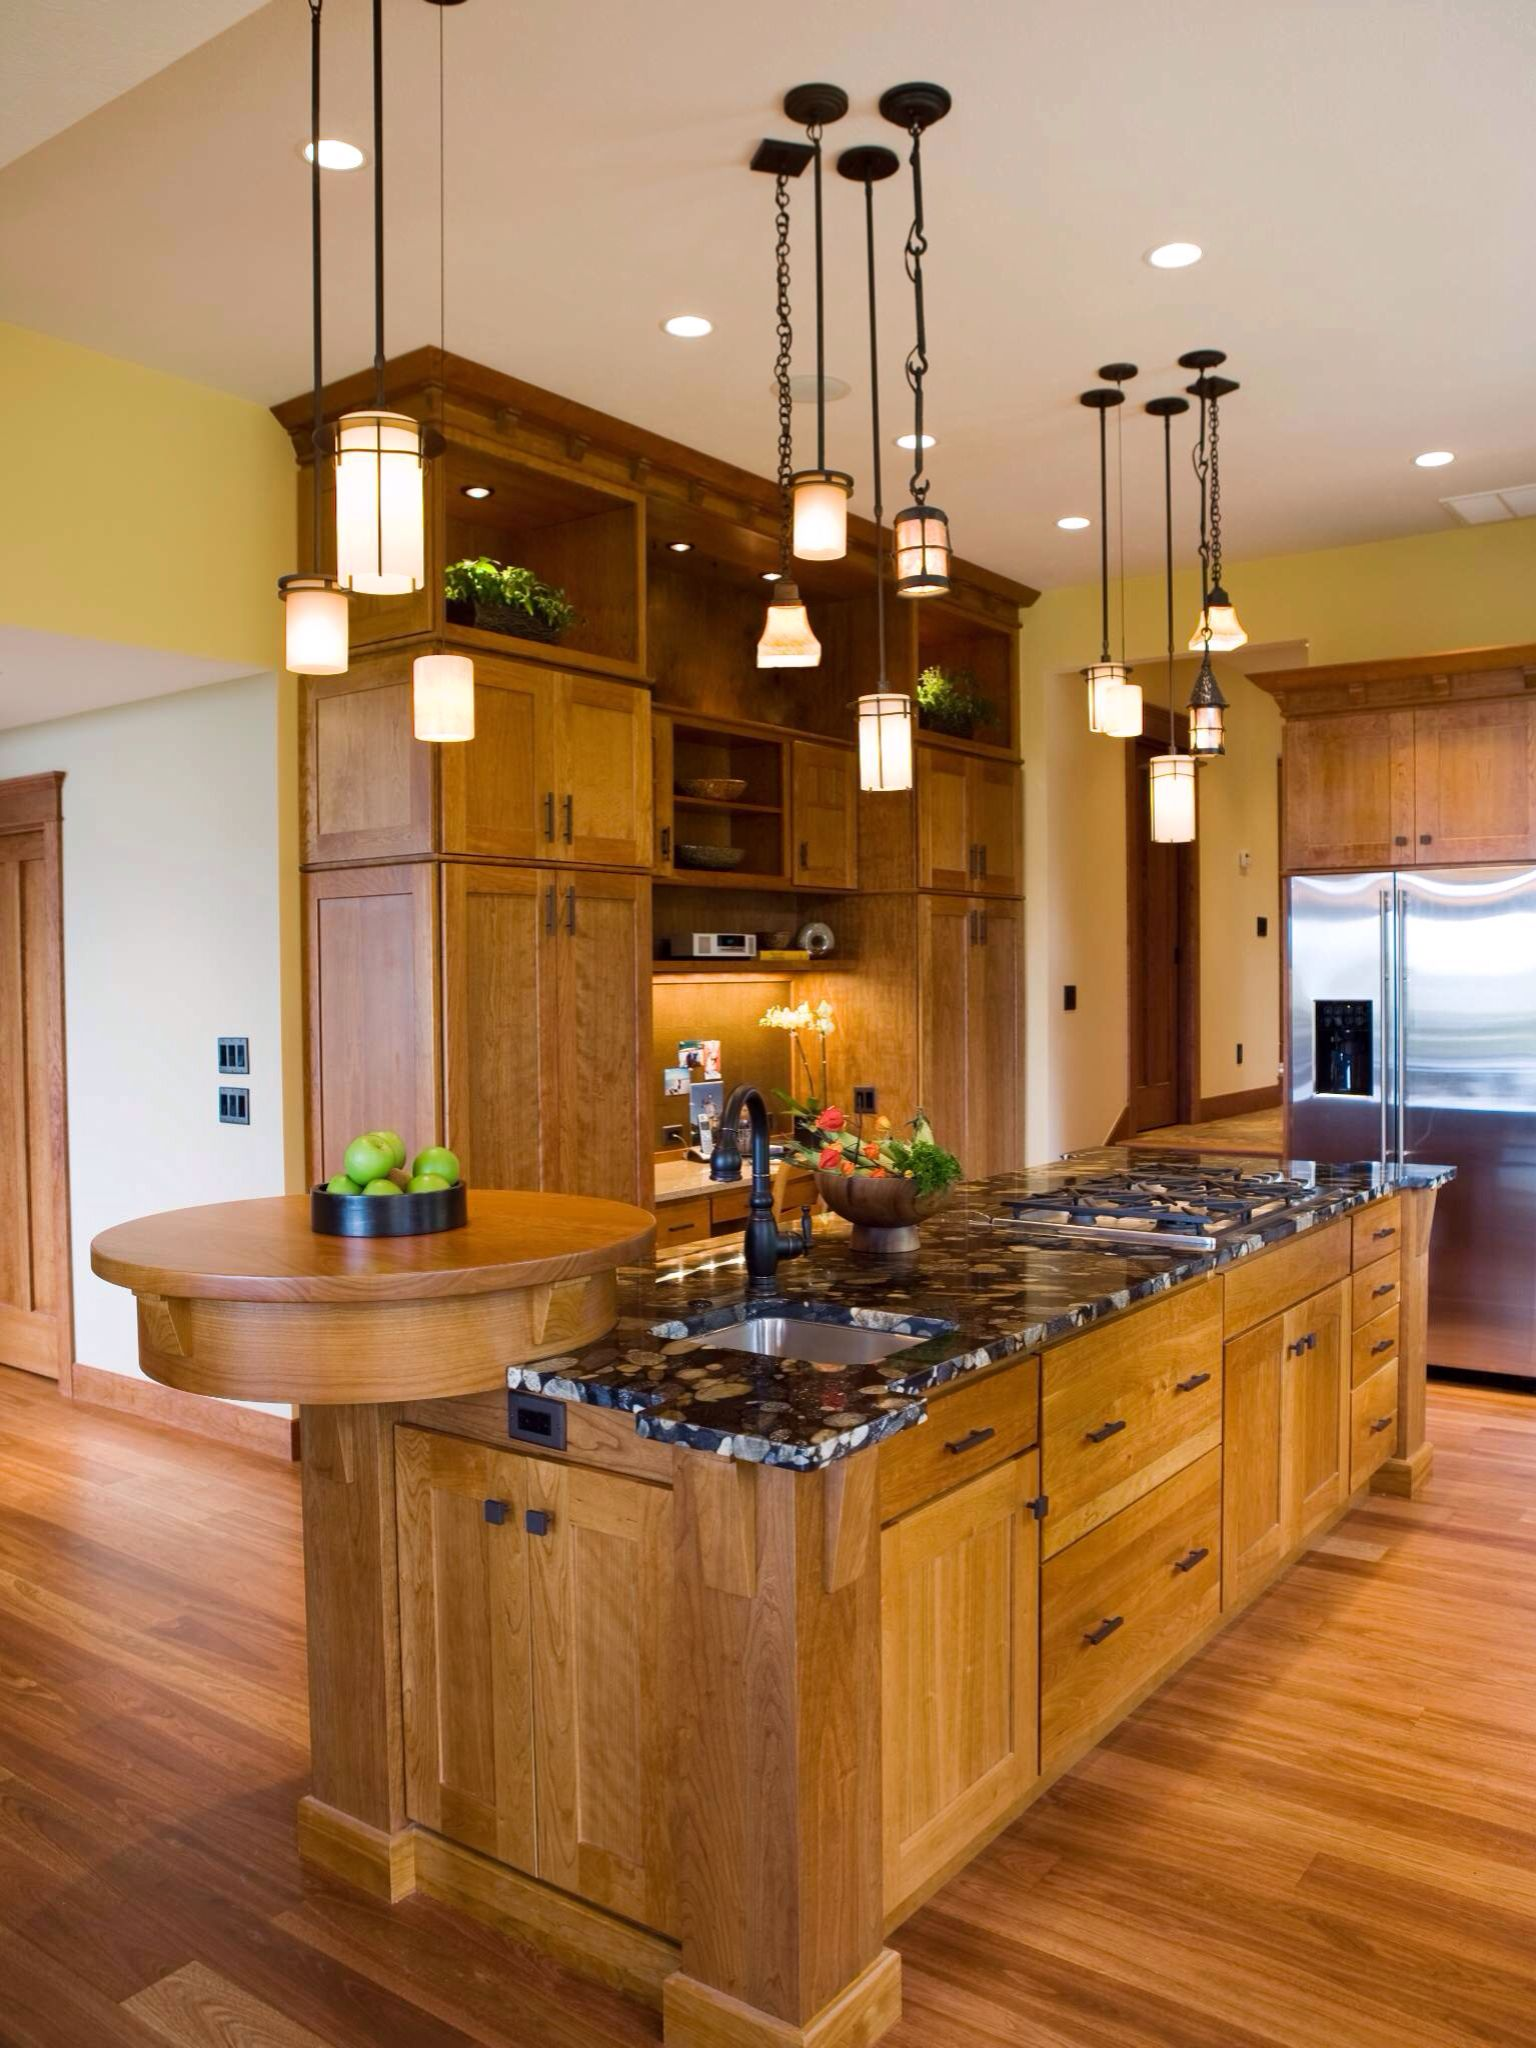 Mission American Kitchen Minneapolis Kitchen Lighting Excellent Updated Mission Style Love The Raised